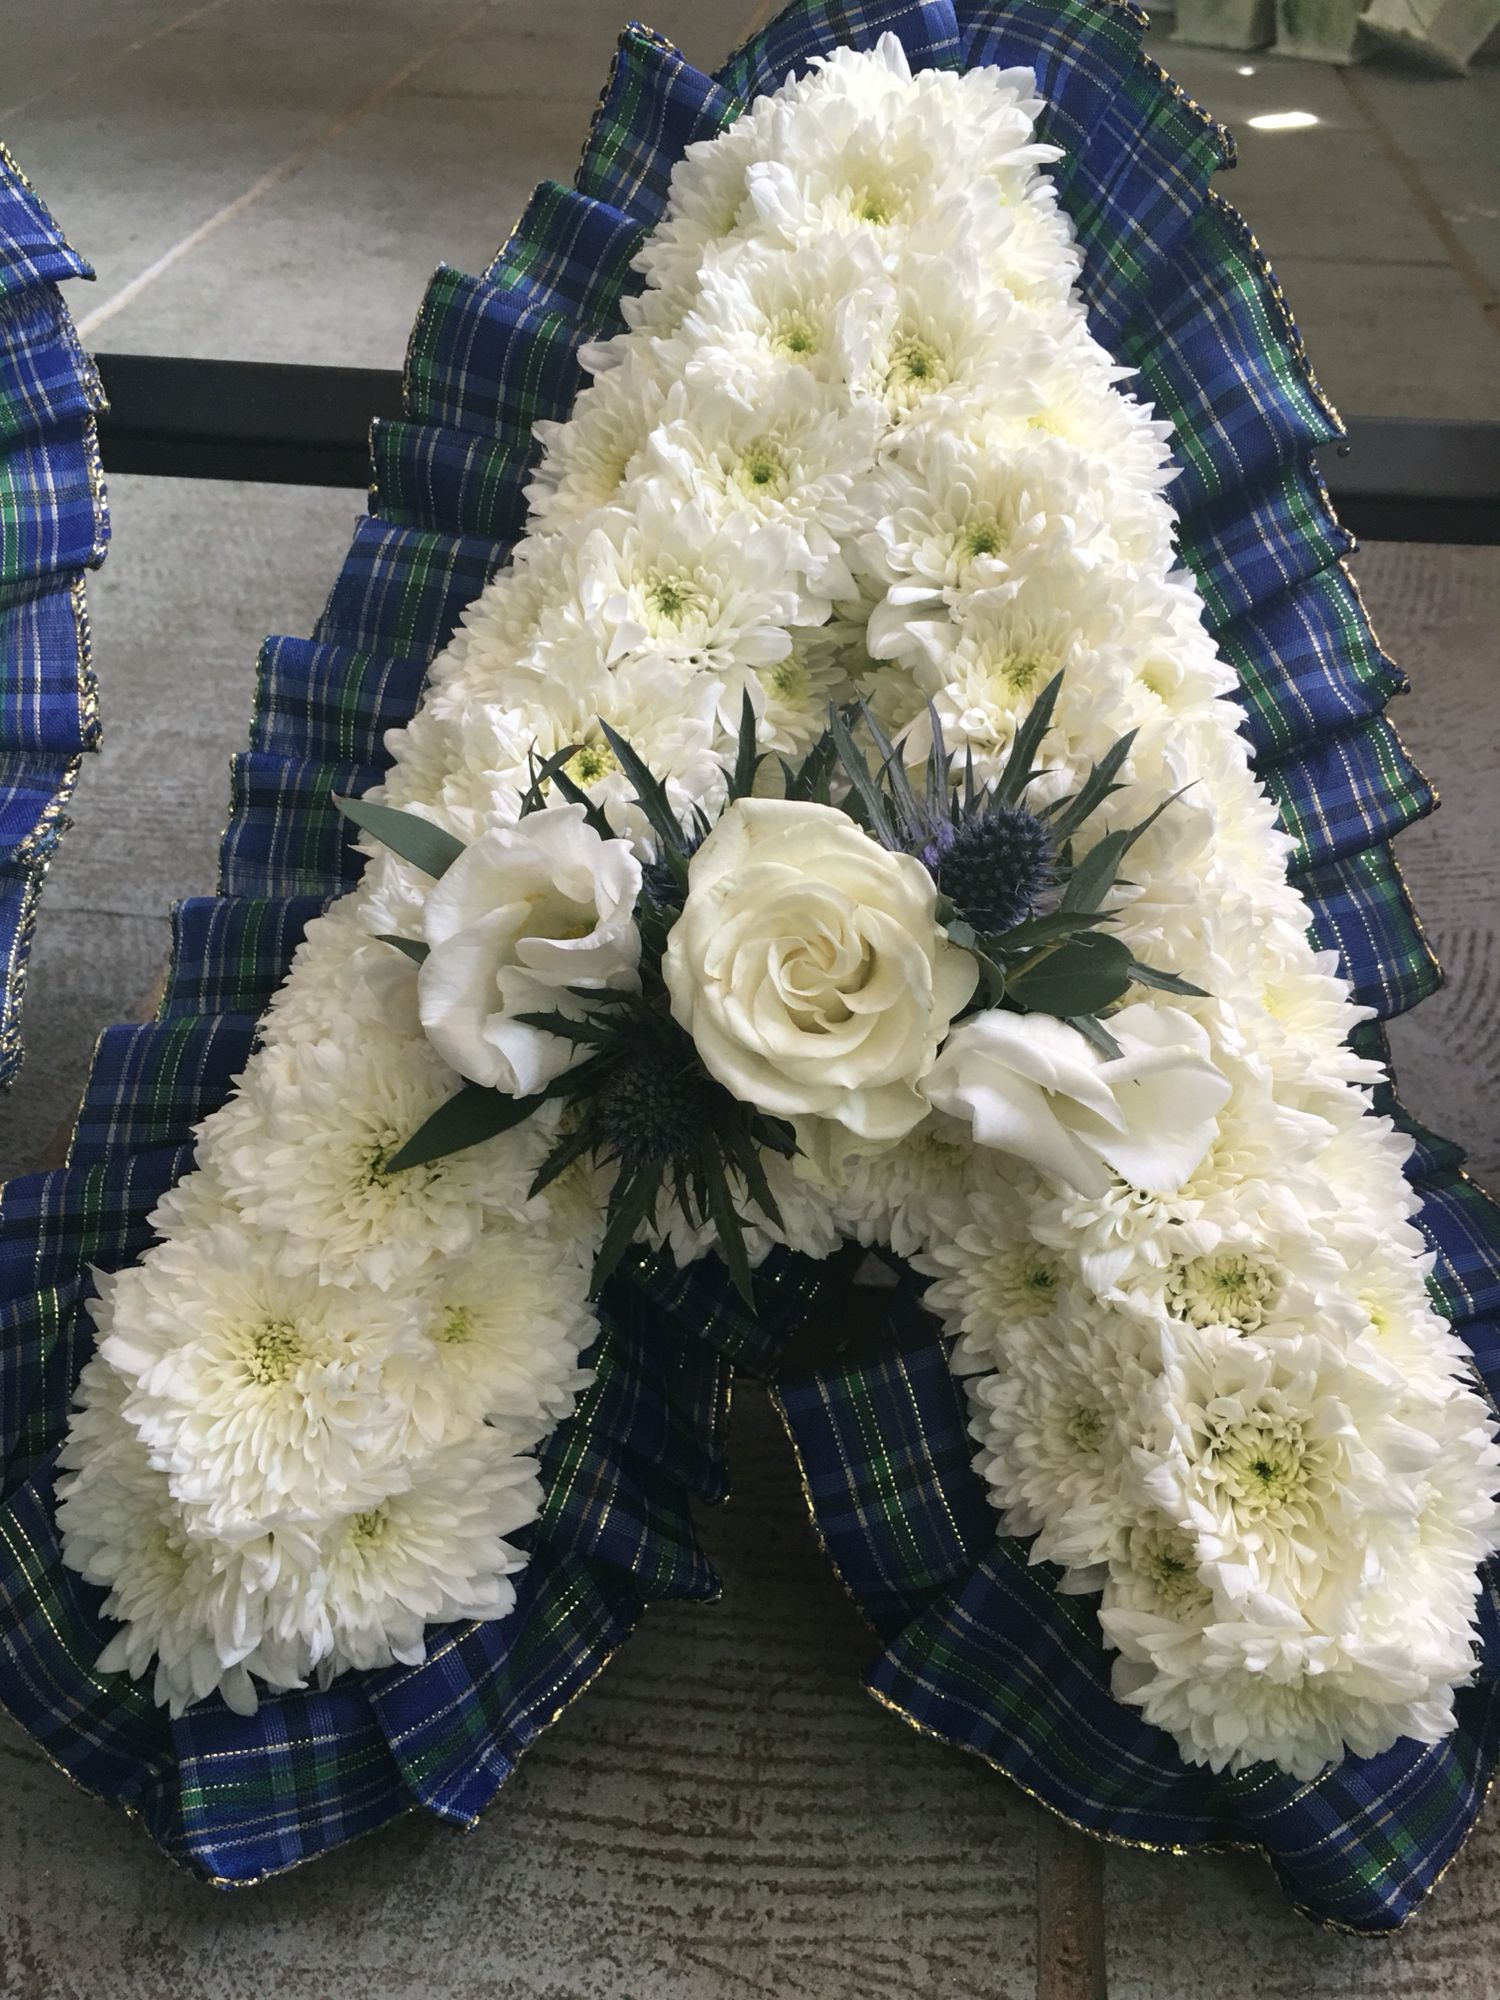 Scottish Style Funeral Flowers Tartan Ribboned Letter Funeral